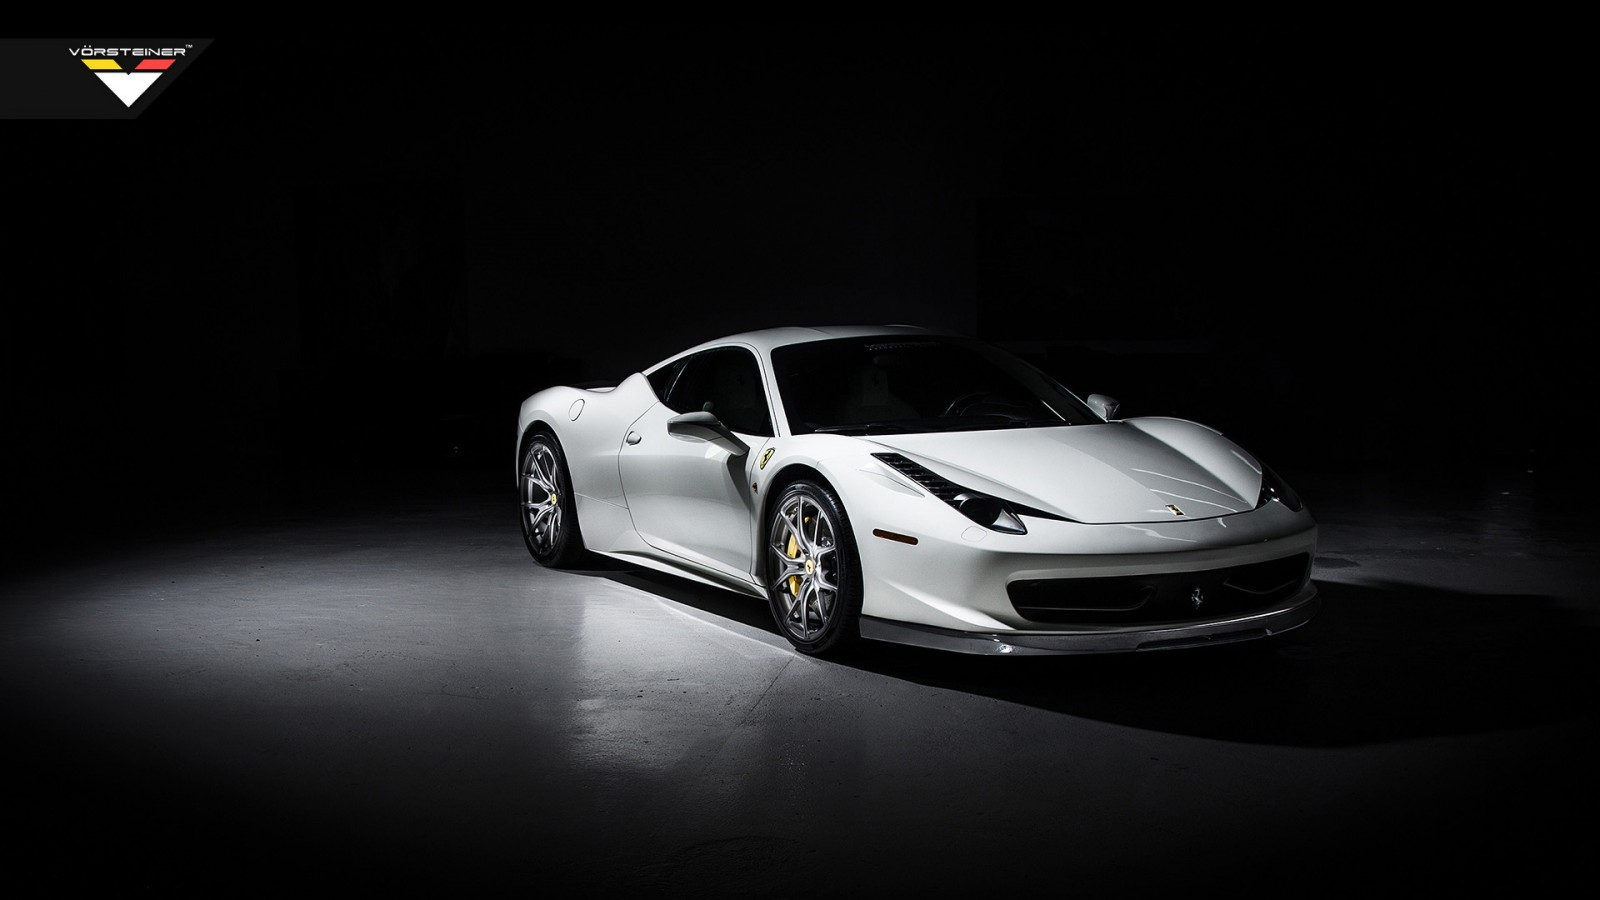 2014 Vorsteiner Ferrari 458 V Italia Wallpaper Hd Car